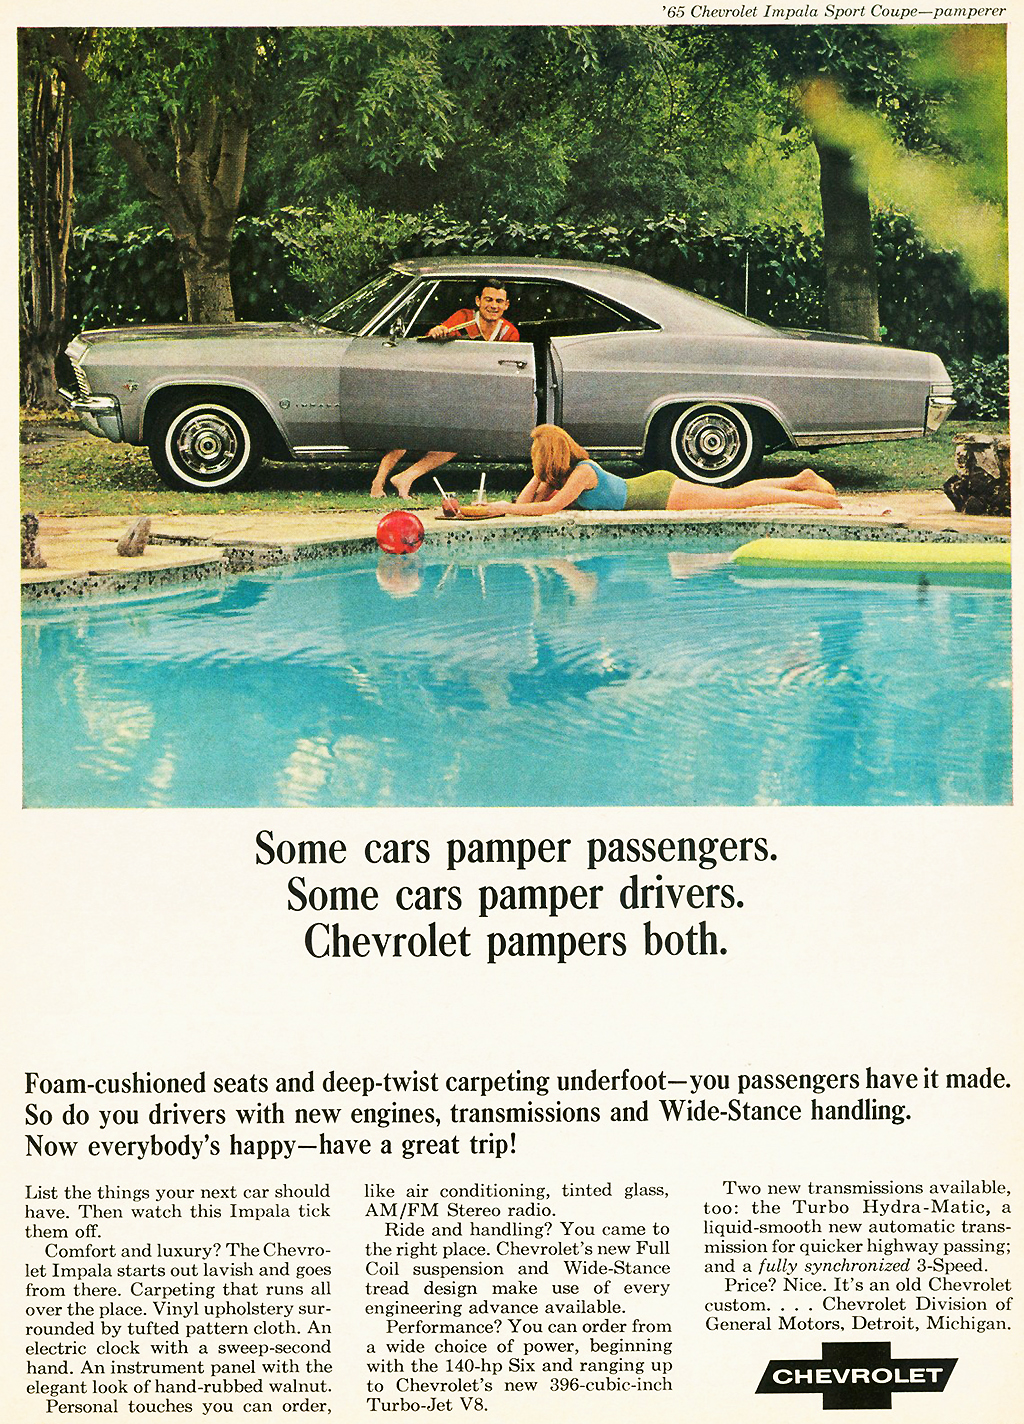 1965 Chevrolet Impala Sport Coupe Ad Classic Cars Today Online